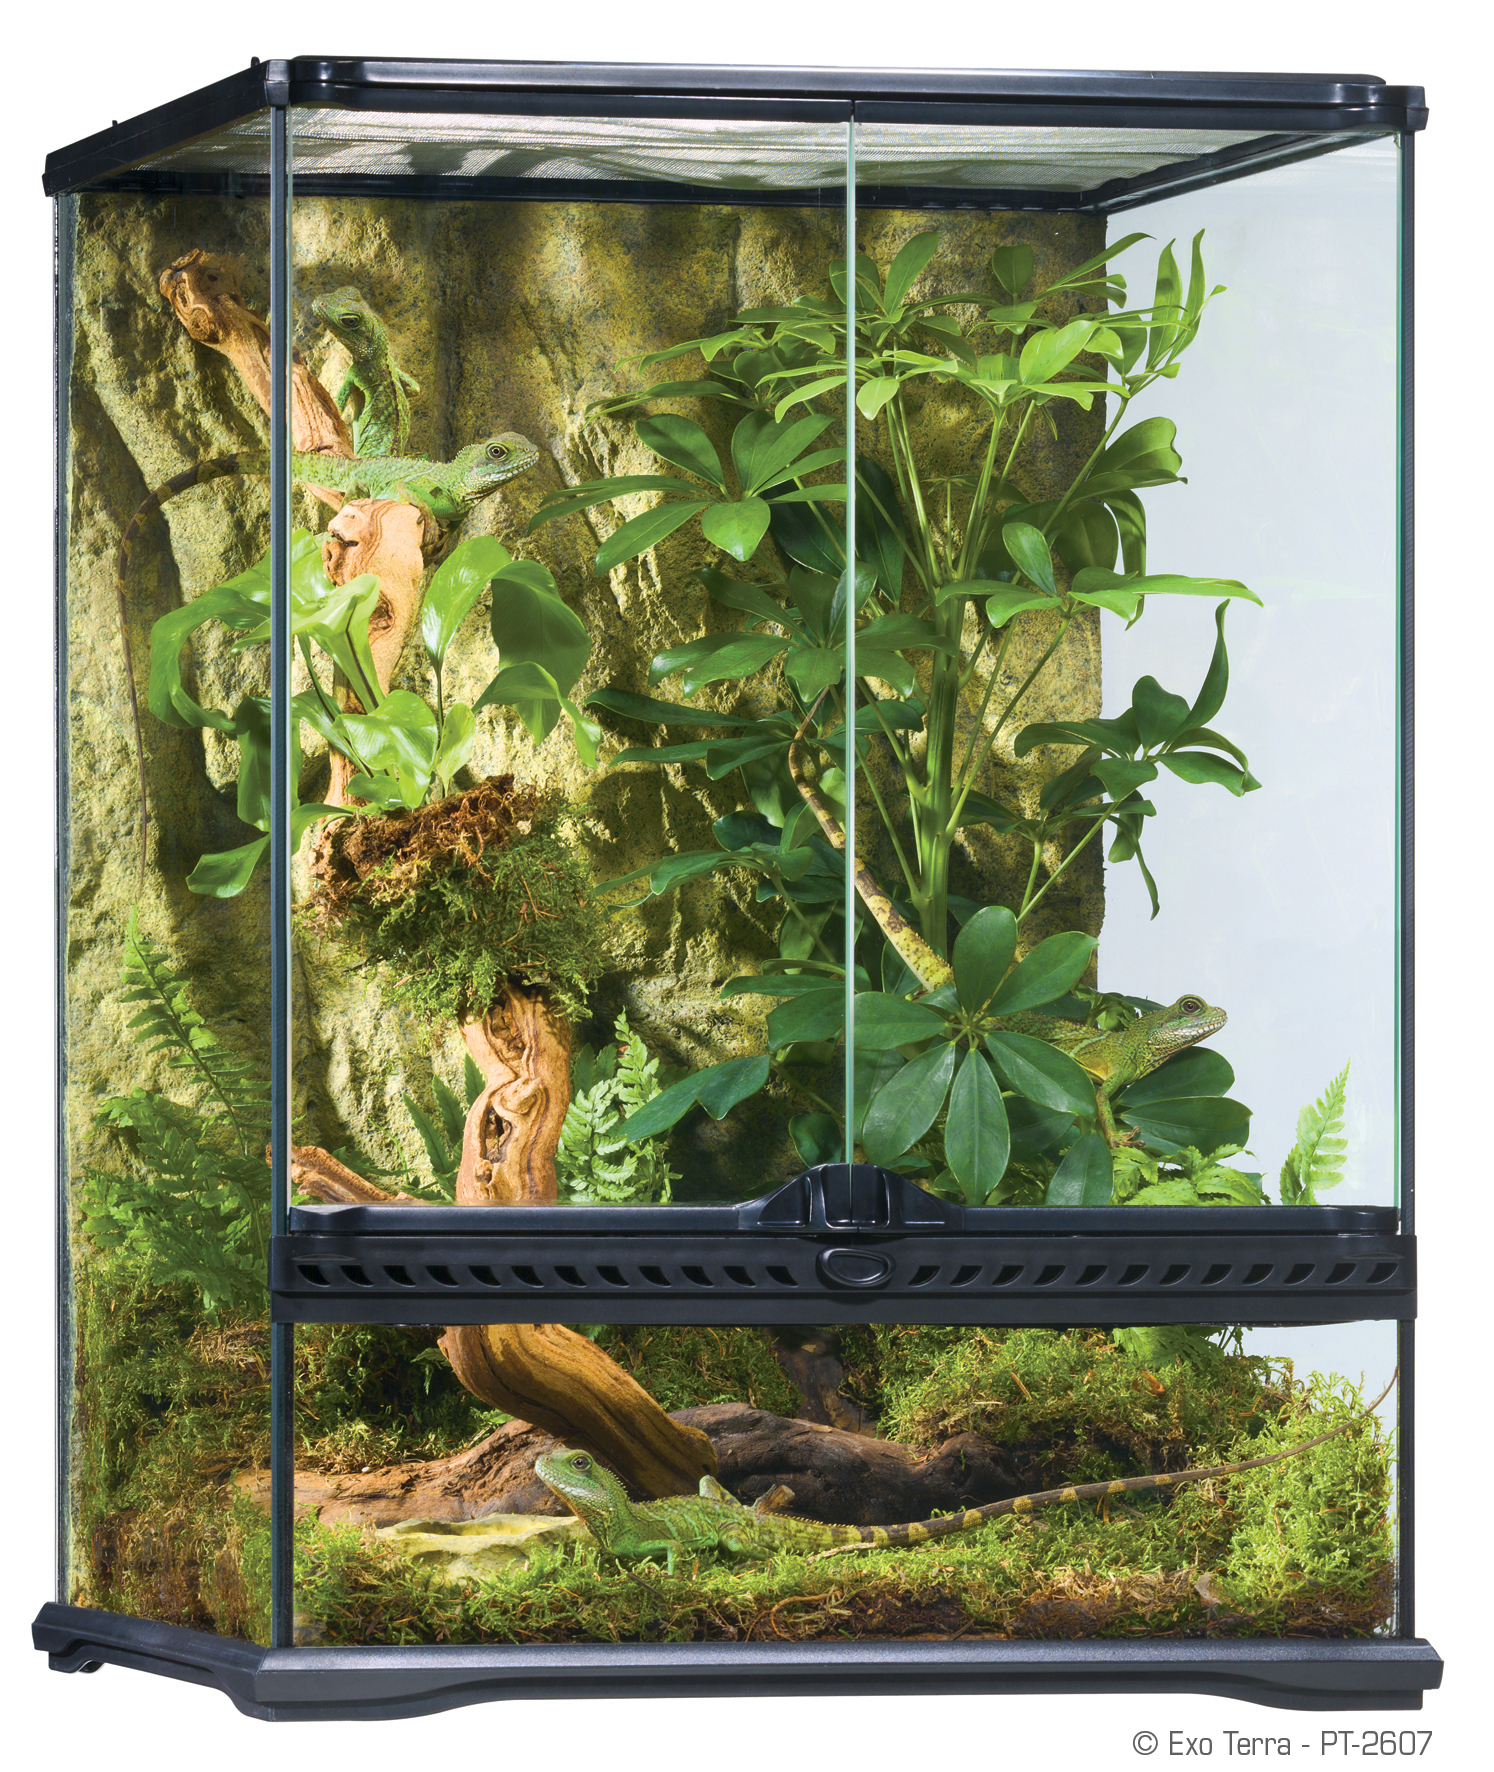 Exo terra natural terrarium small advanced reptile habitat for 18 x 60 window